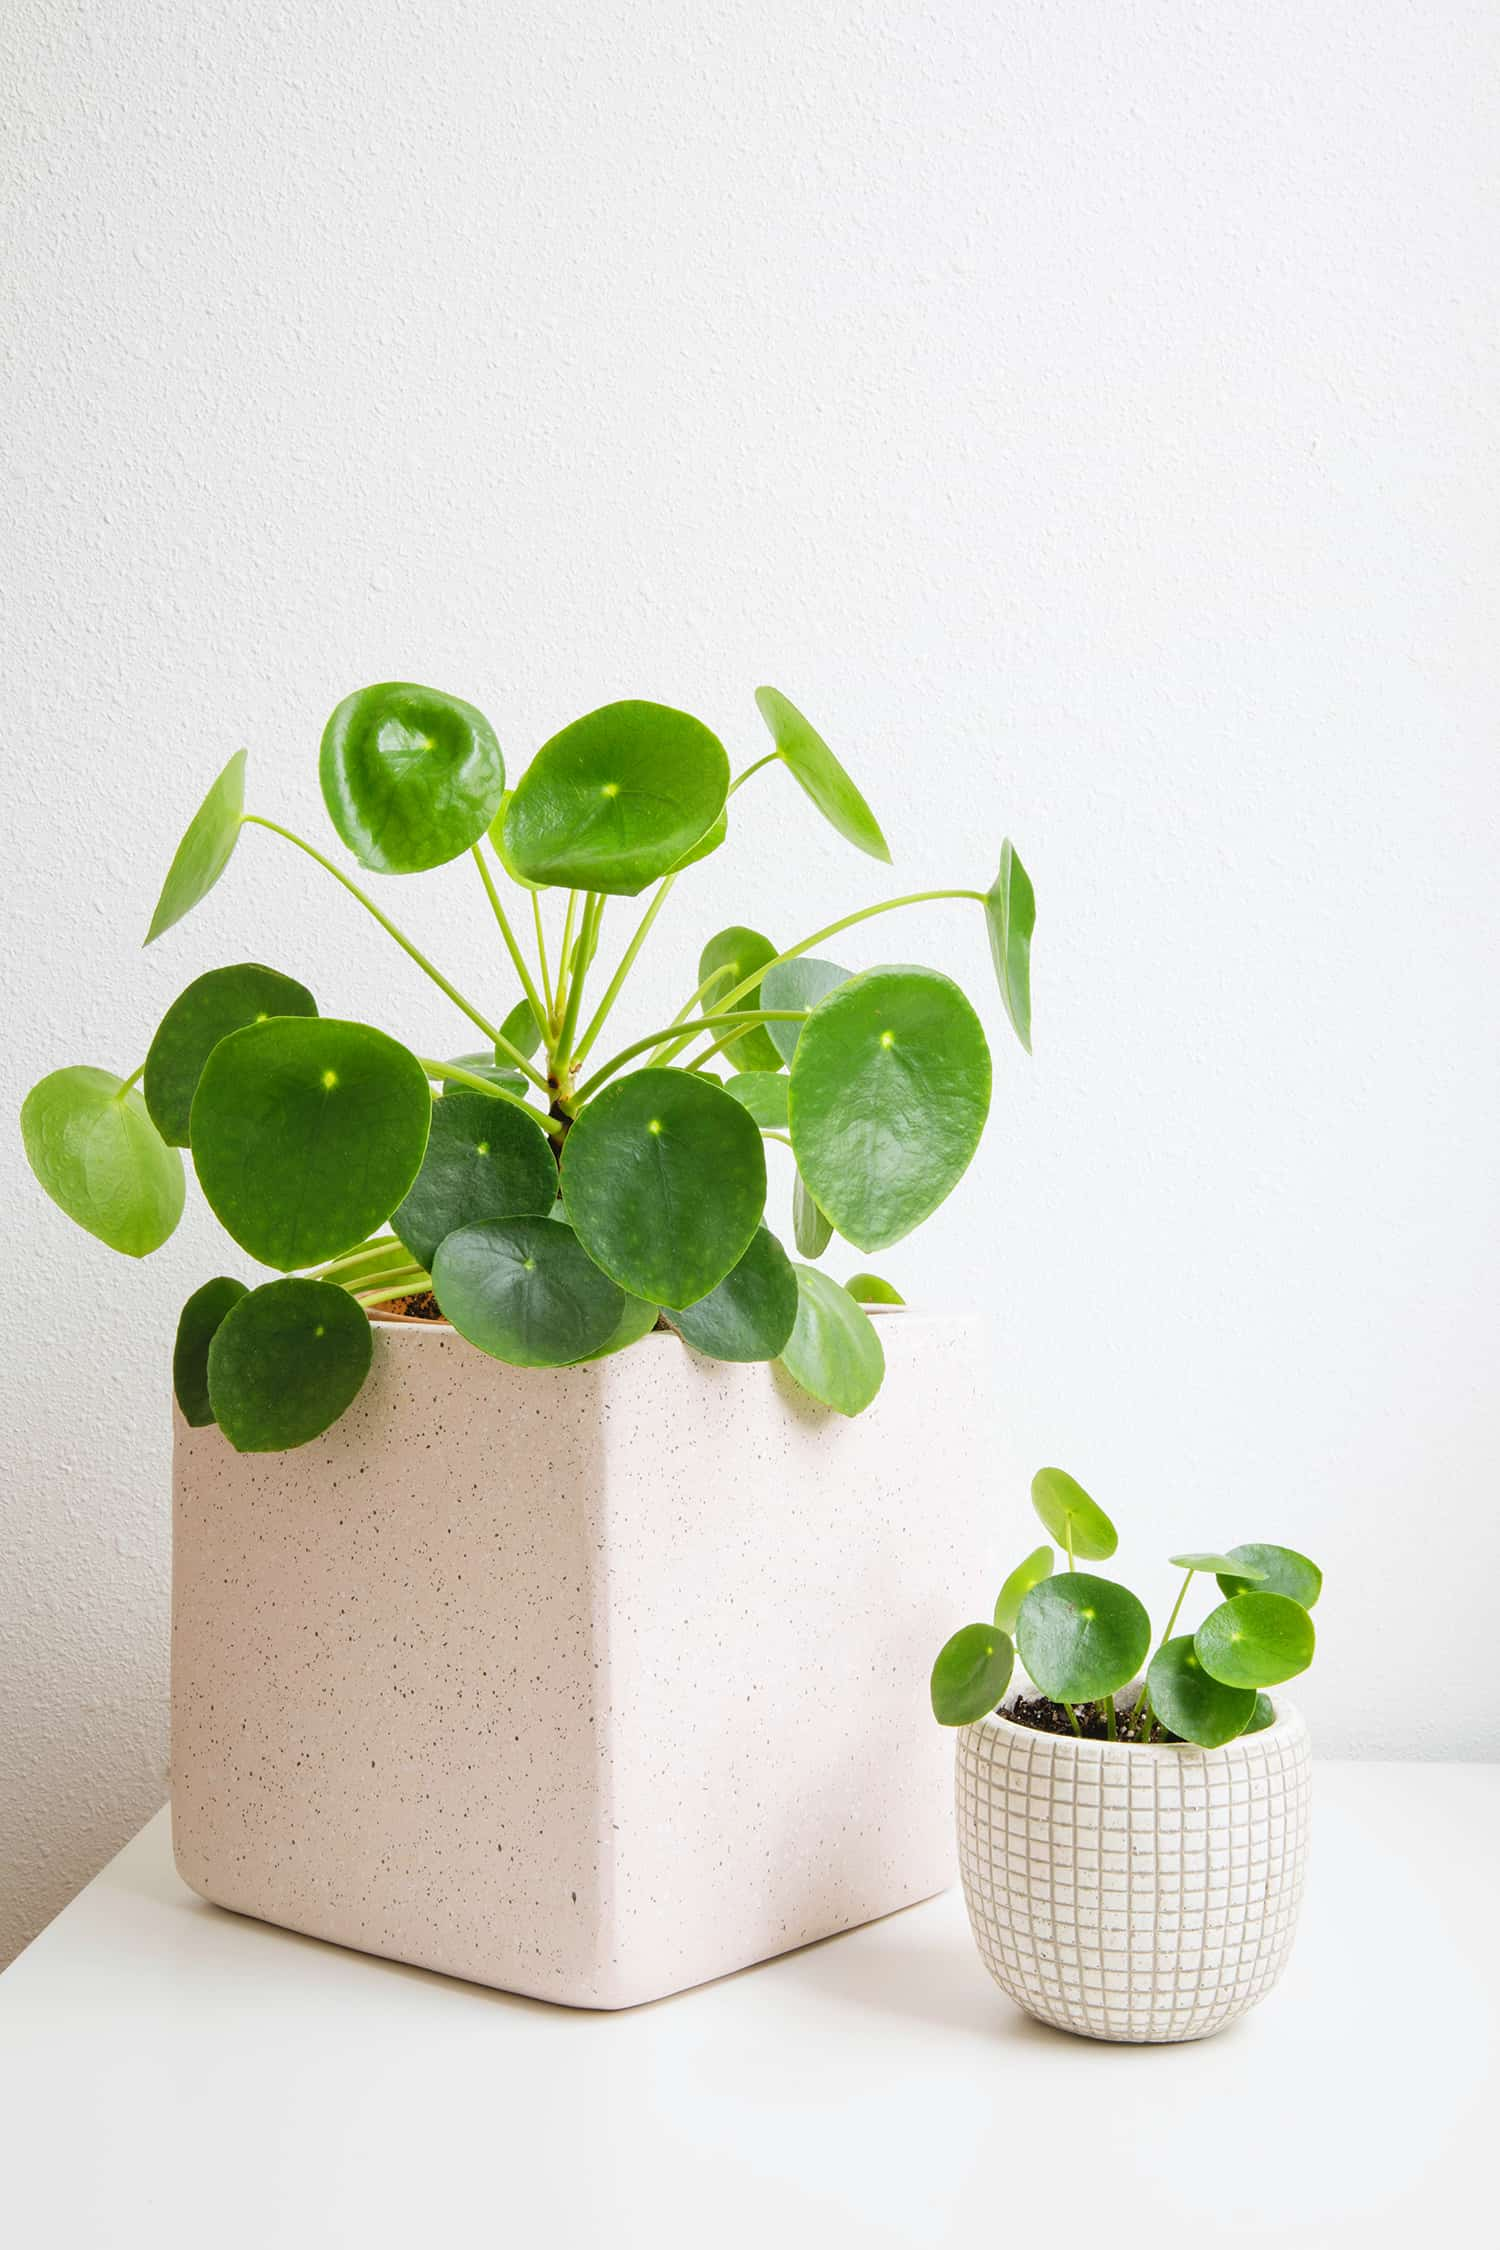 5 Tips For Caring For Fiddle Leaf Figs